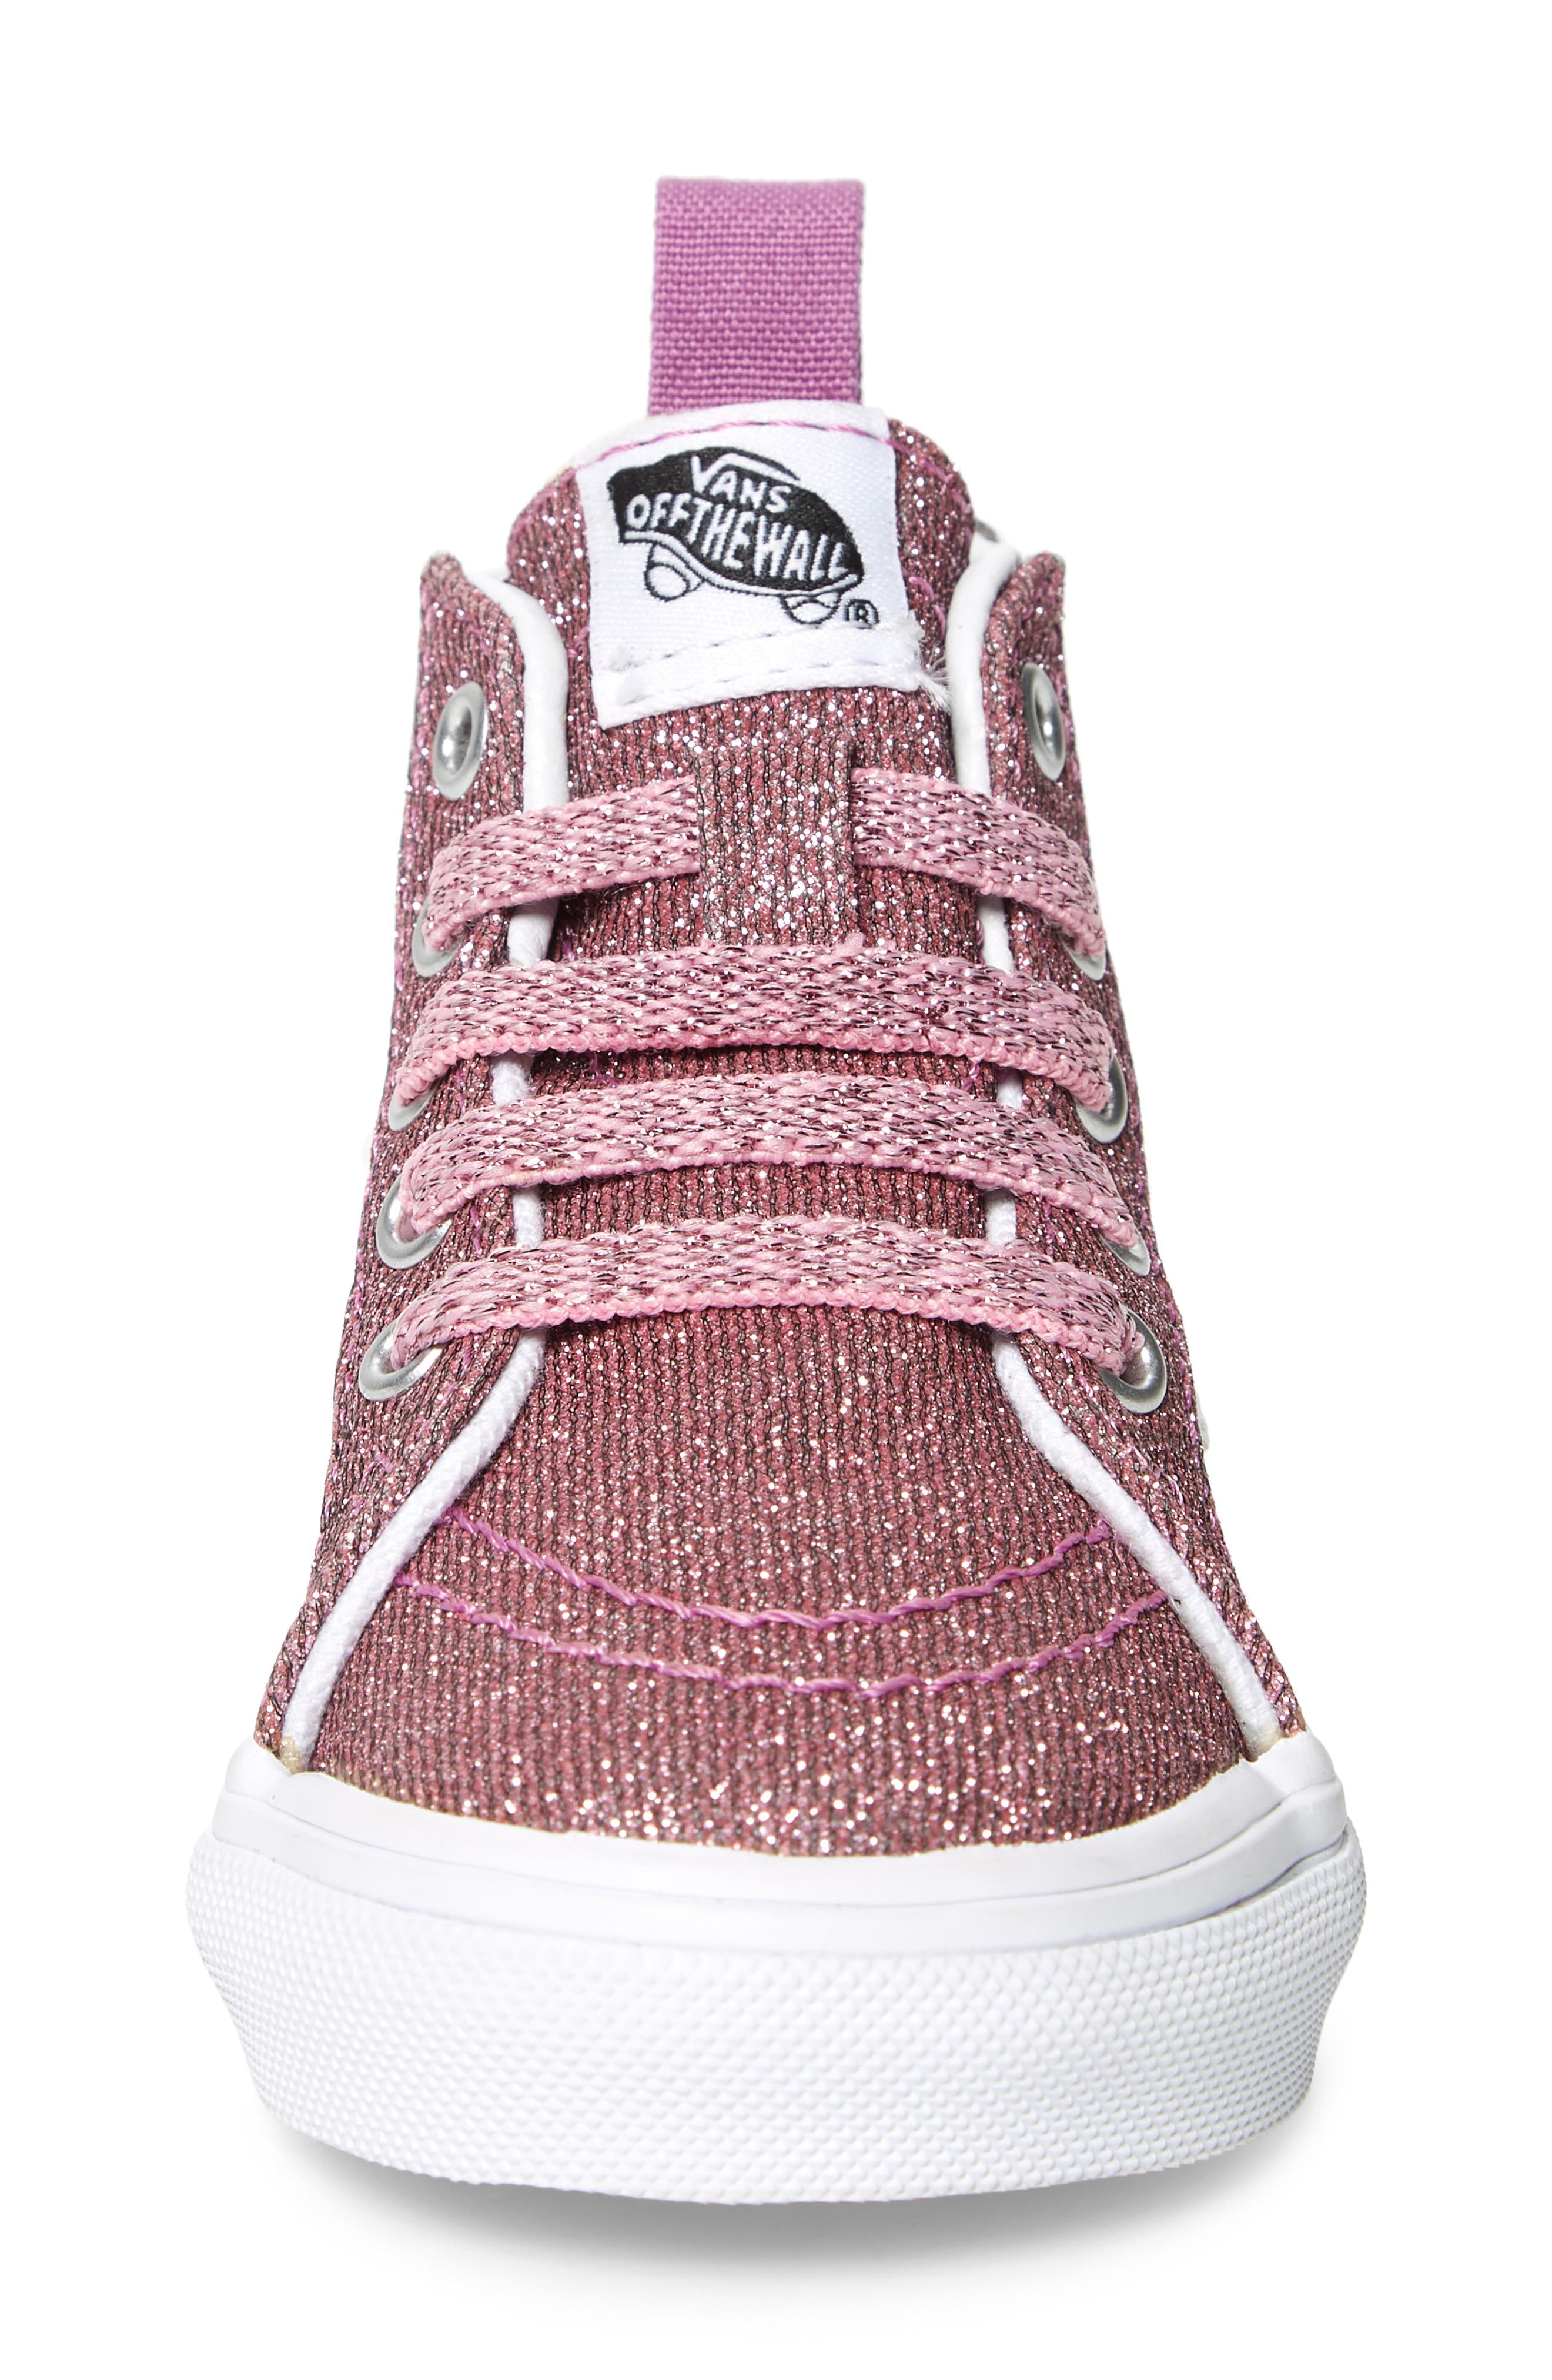 Sk8-Hi Zip Sneaker,                             Alternate thumbnail 4, color,                             LUREX GLITTER PINK/ TRUE WHITE